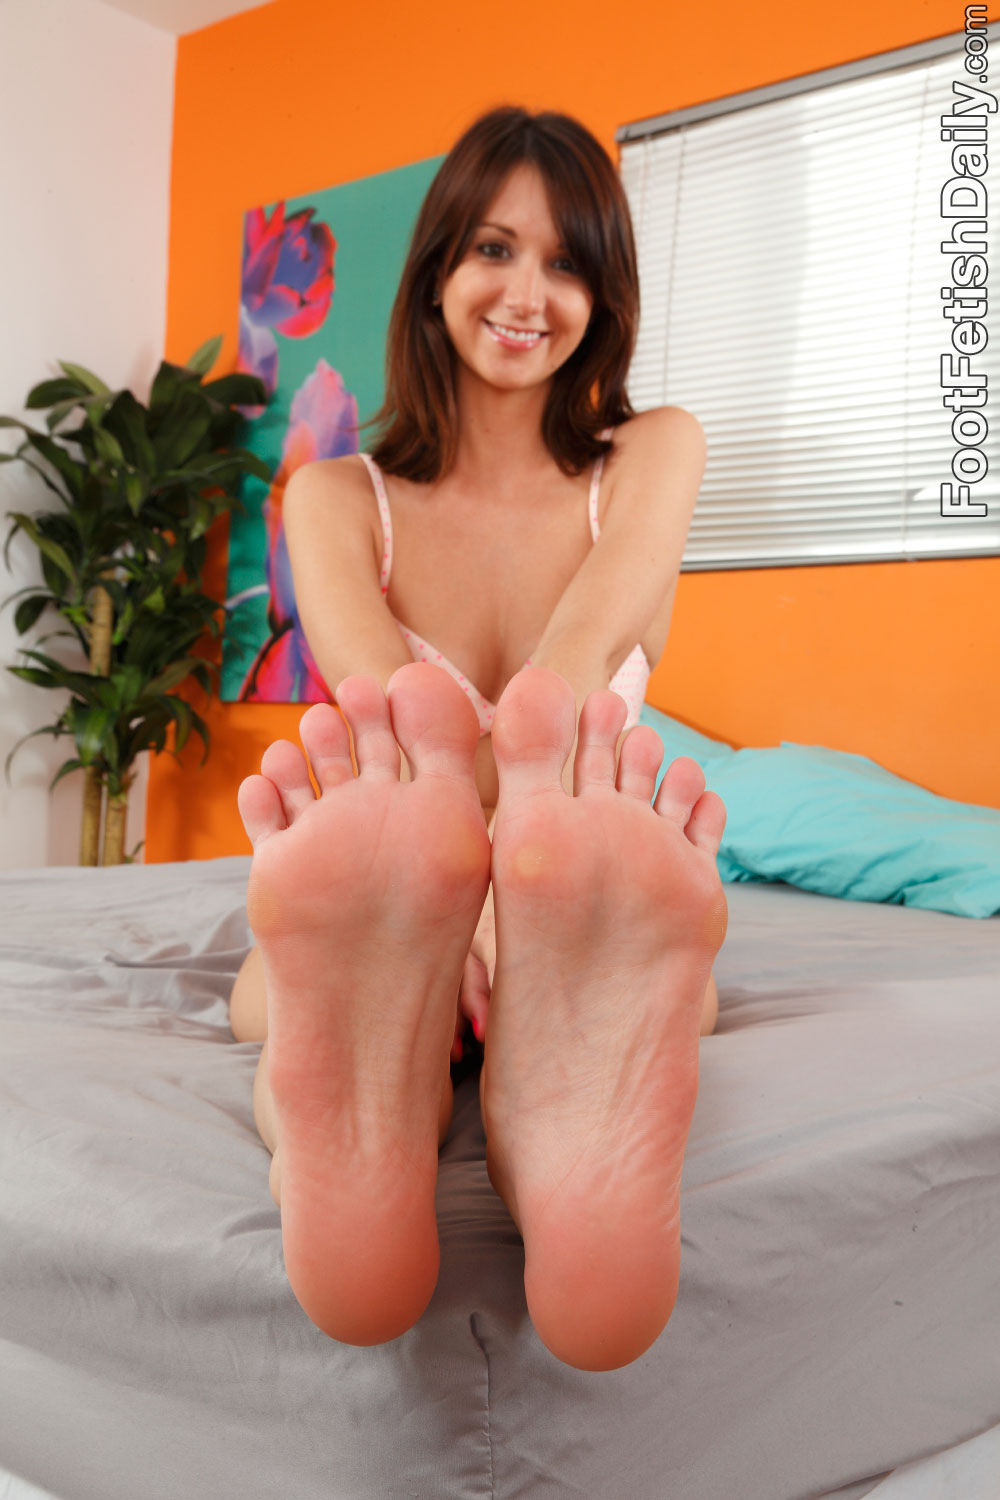 foot fetish katie jordin jpg 422x640